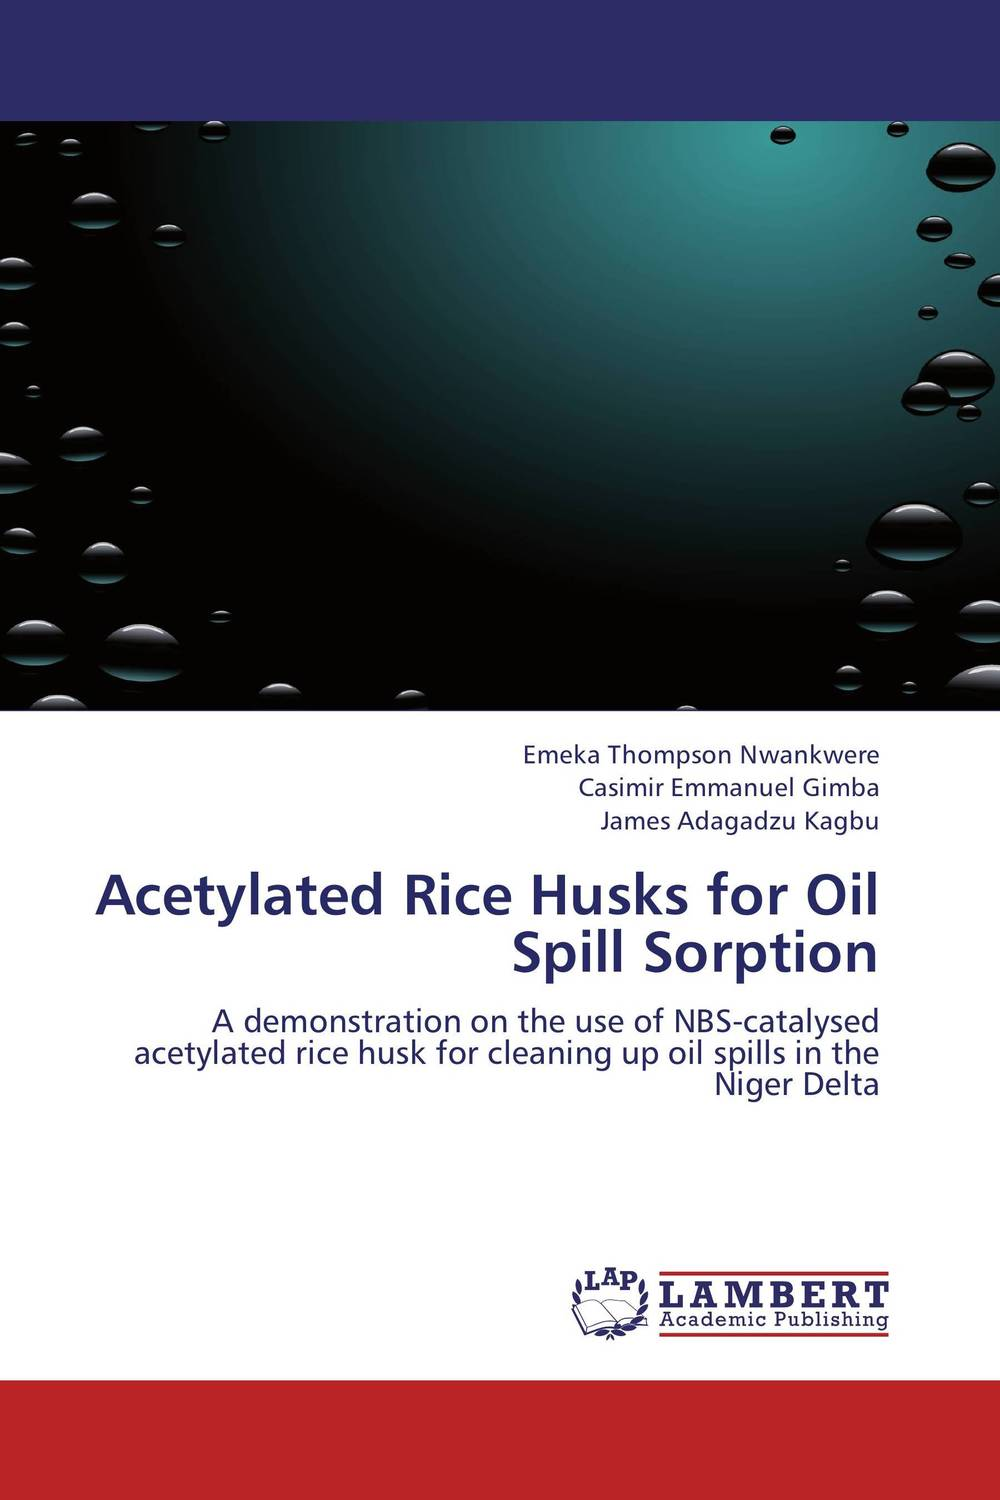 Acetylated Rice Husks for Oil Spill Sorption dearomatization of crude oil